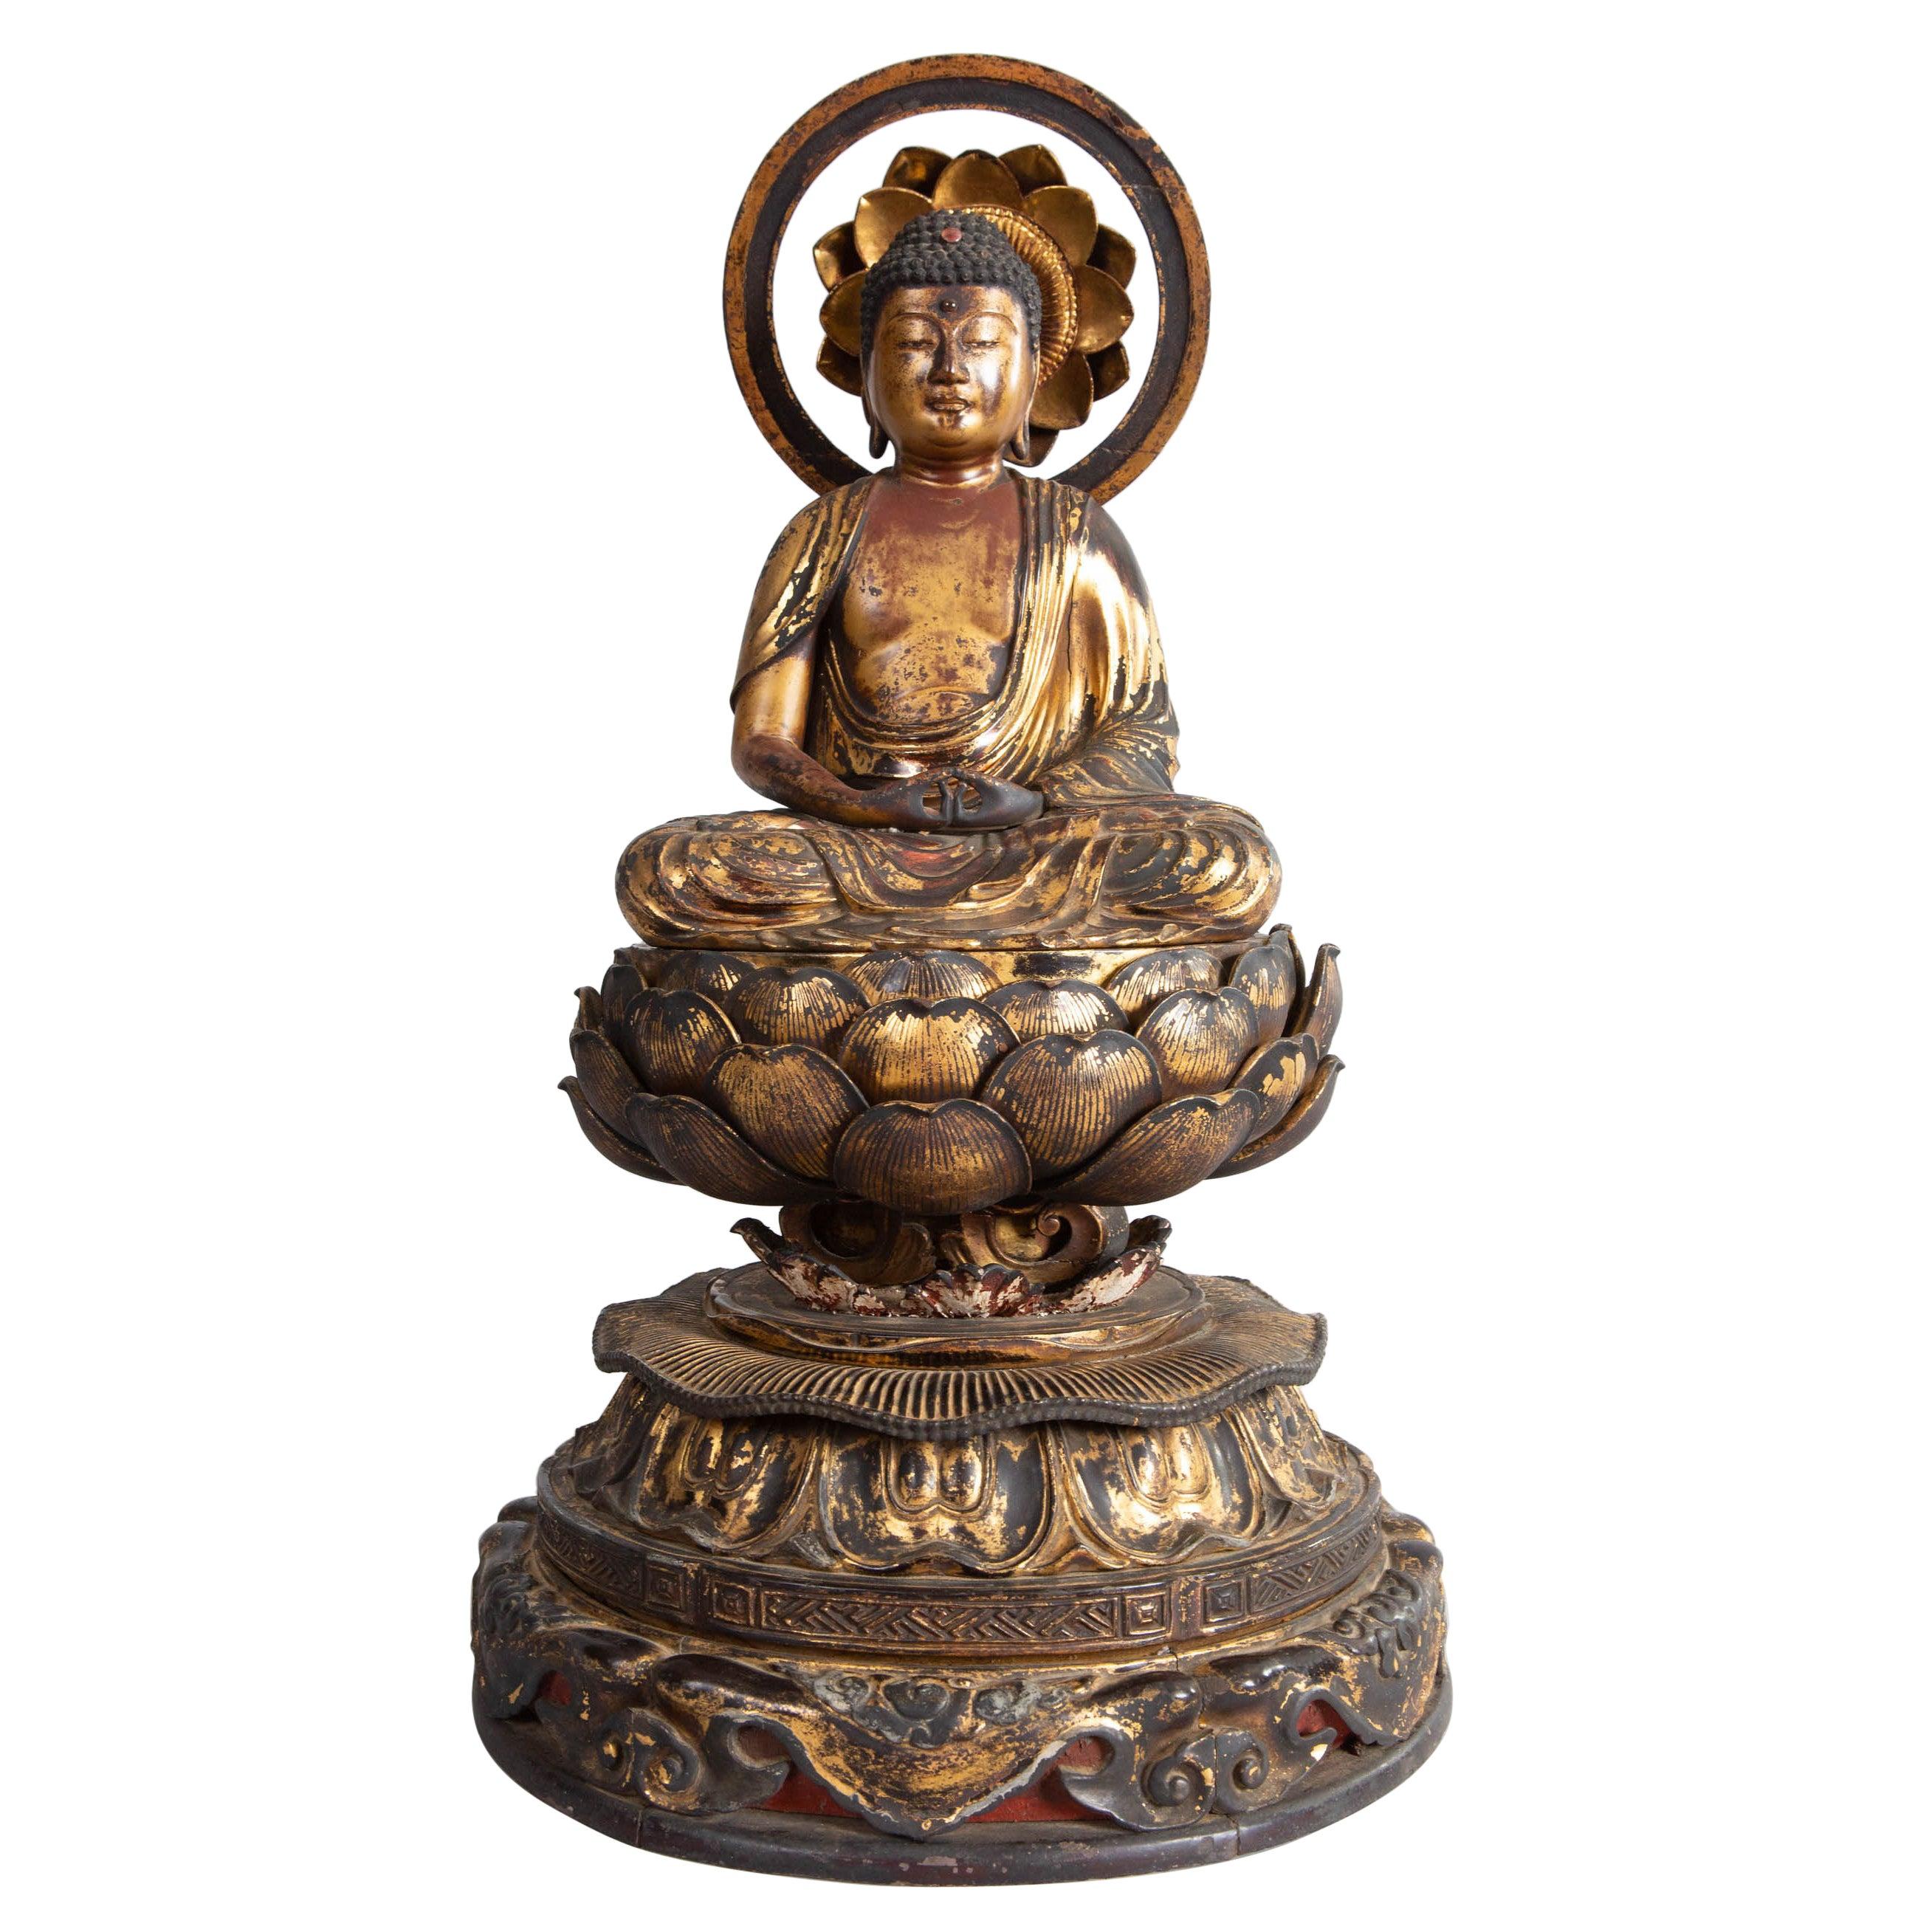 14th Century, Muromachi Period, Japanese Gilded Amida Buddha